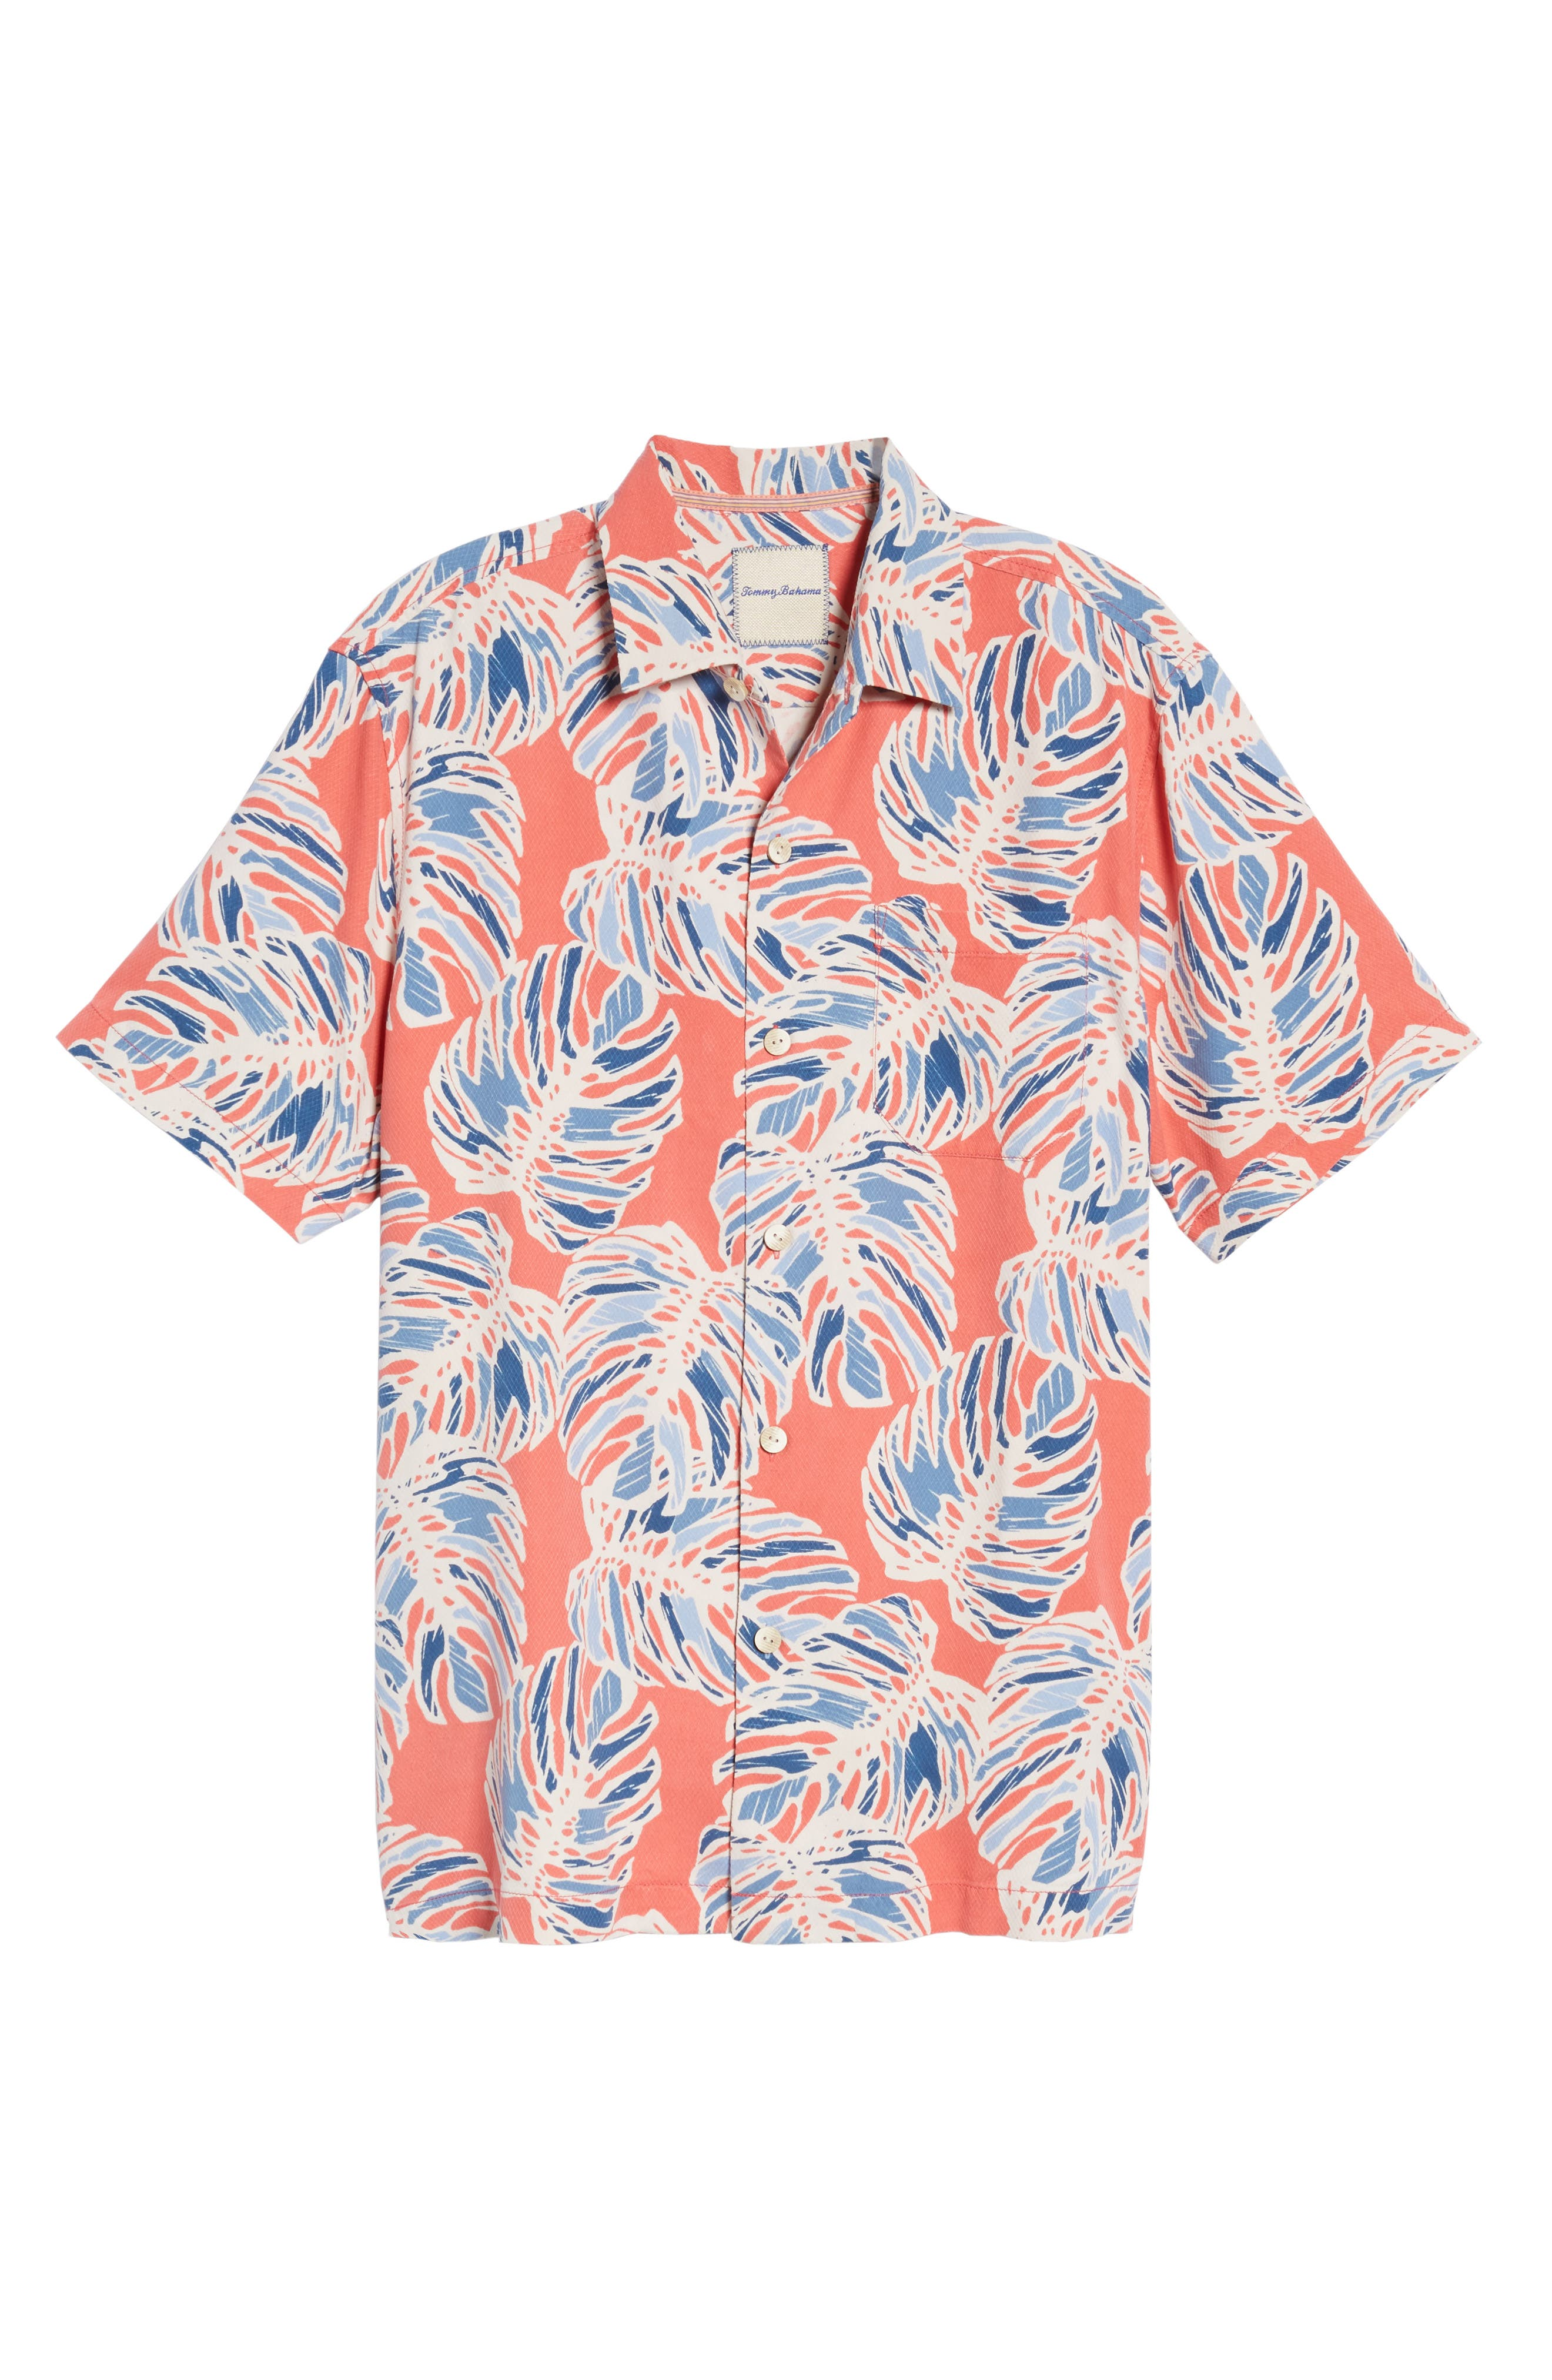 Leaf It to Chance Silk Camp Shirt,                             Alternate thumbnail 6, color,